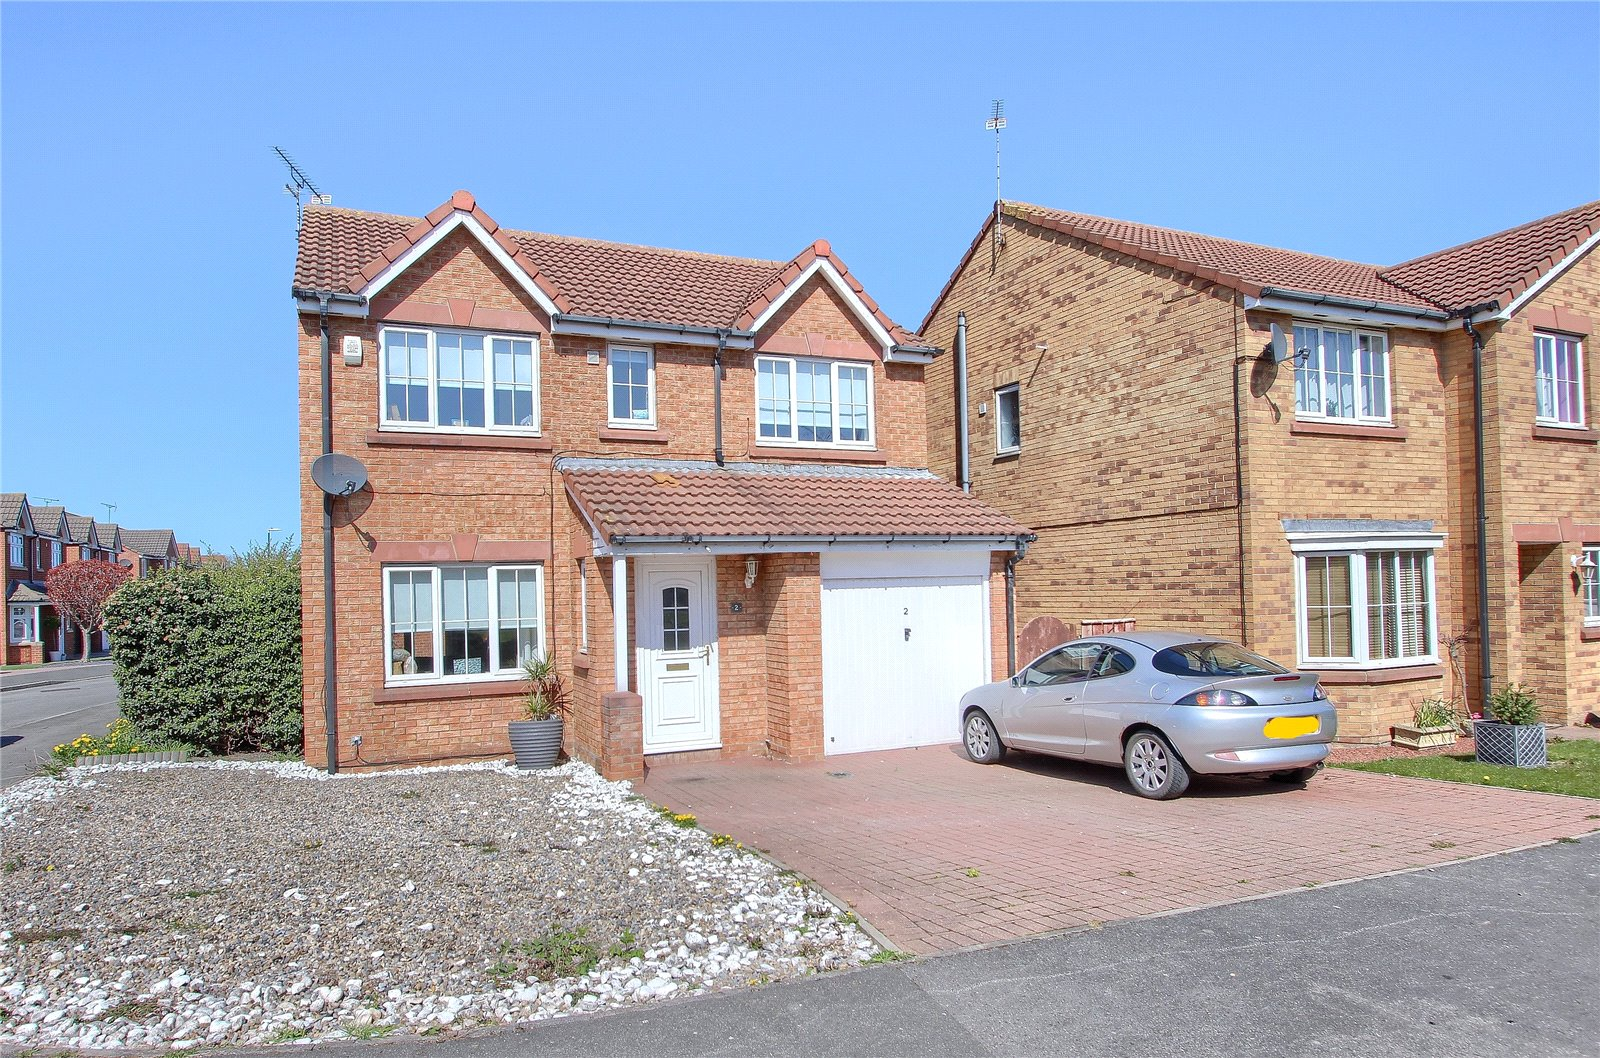 4 bed house for sale in Dulas Close, Redcar 1